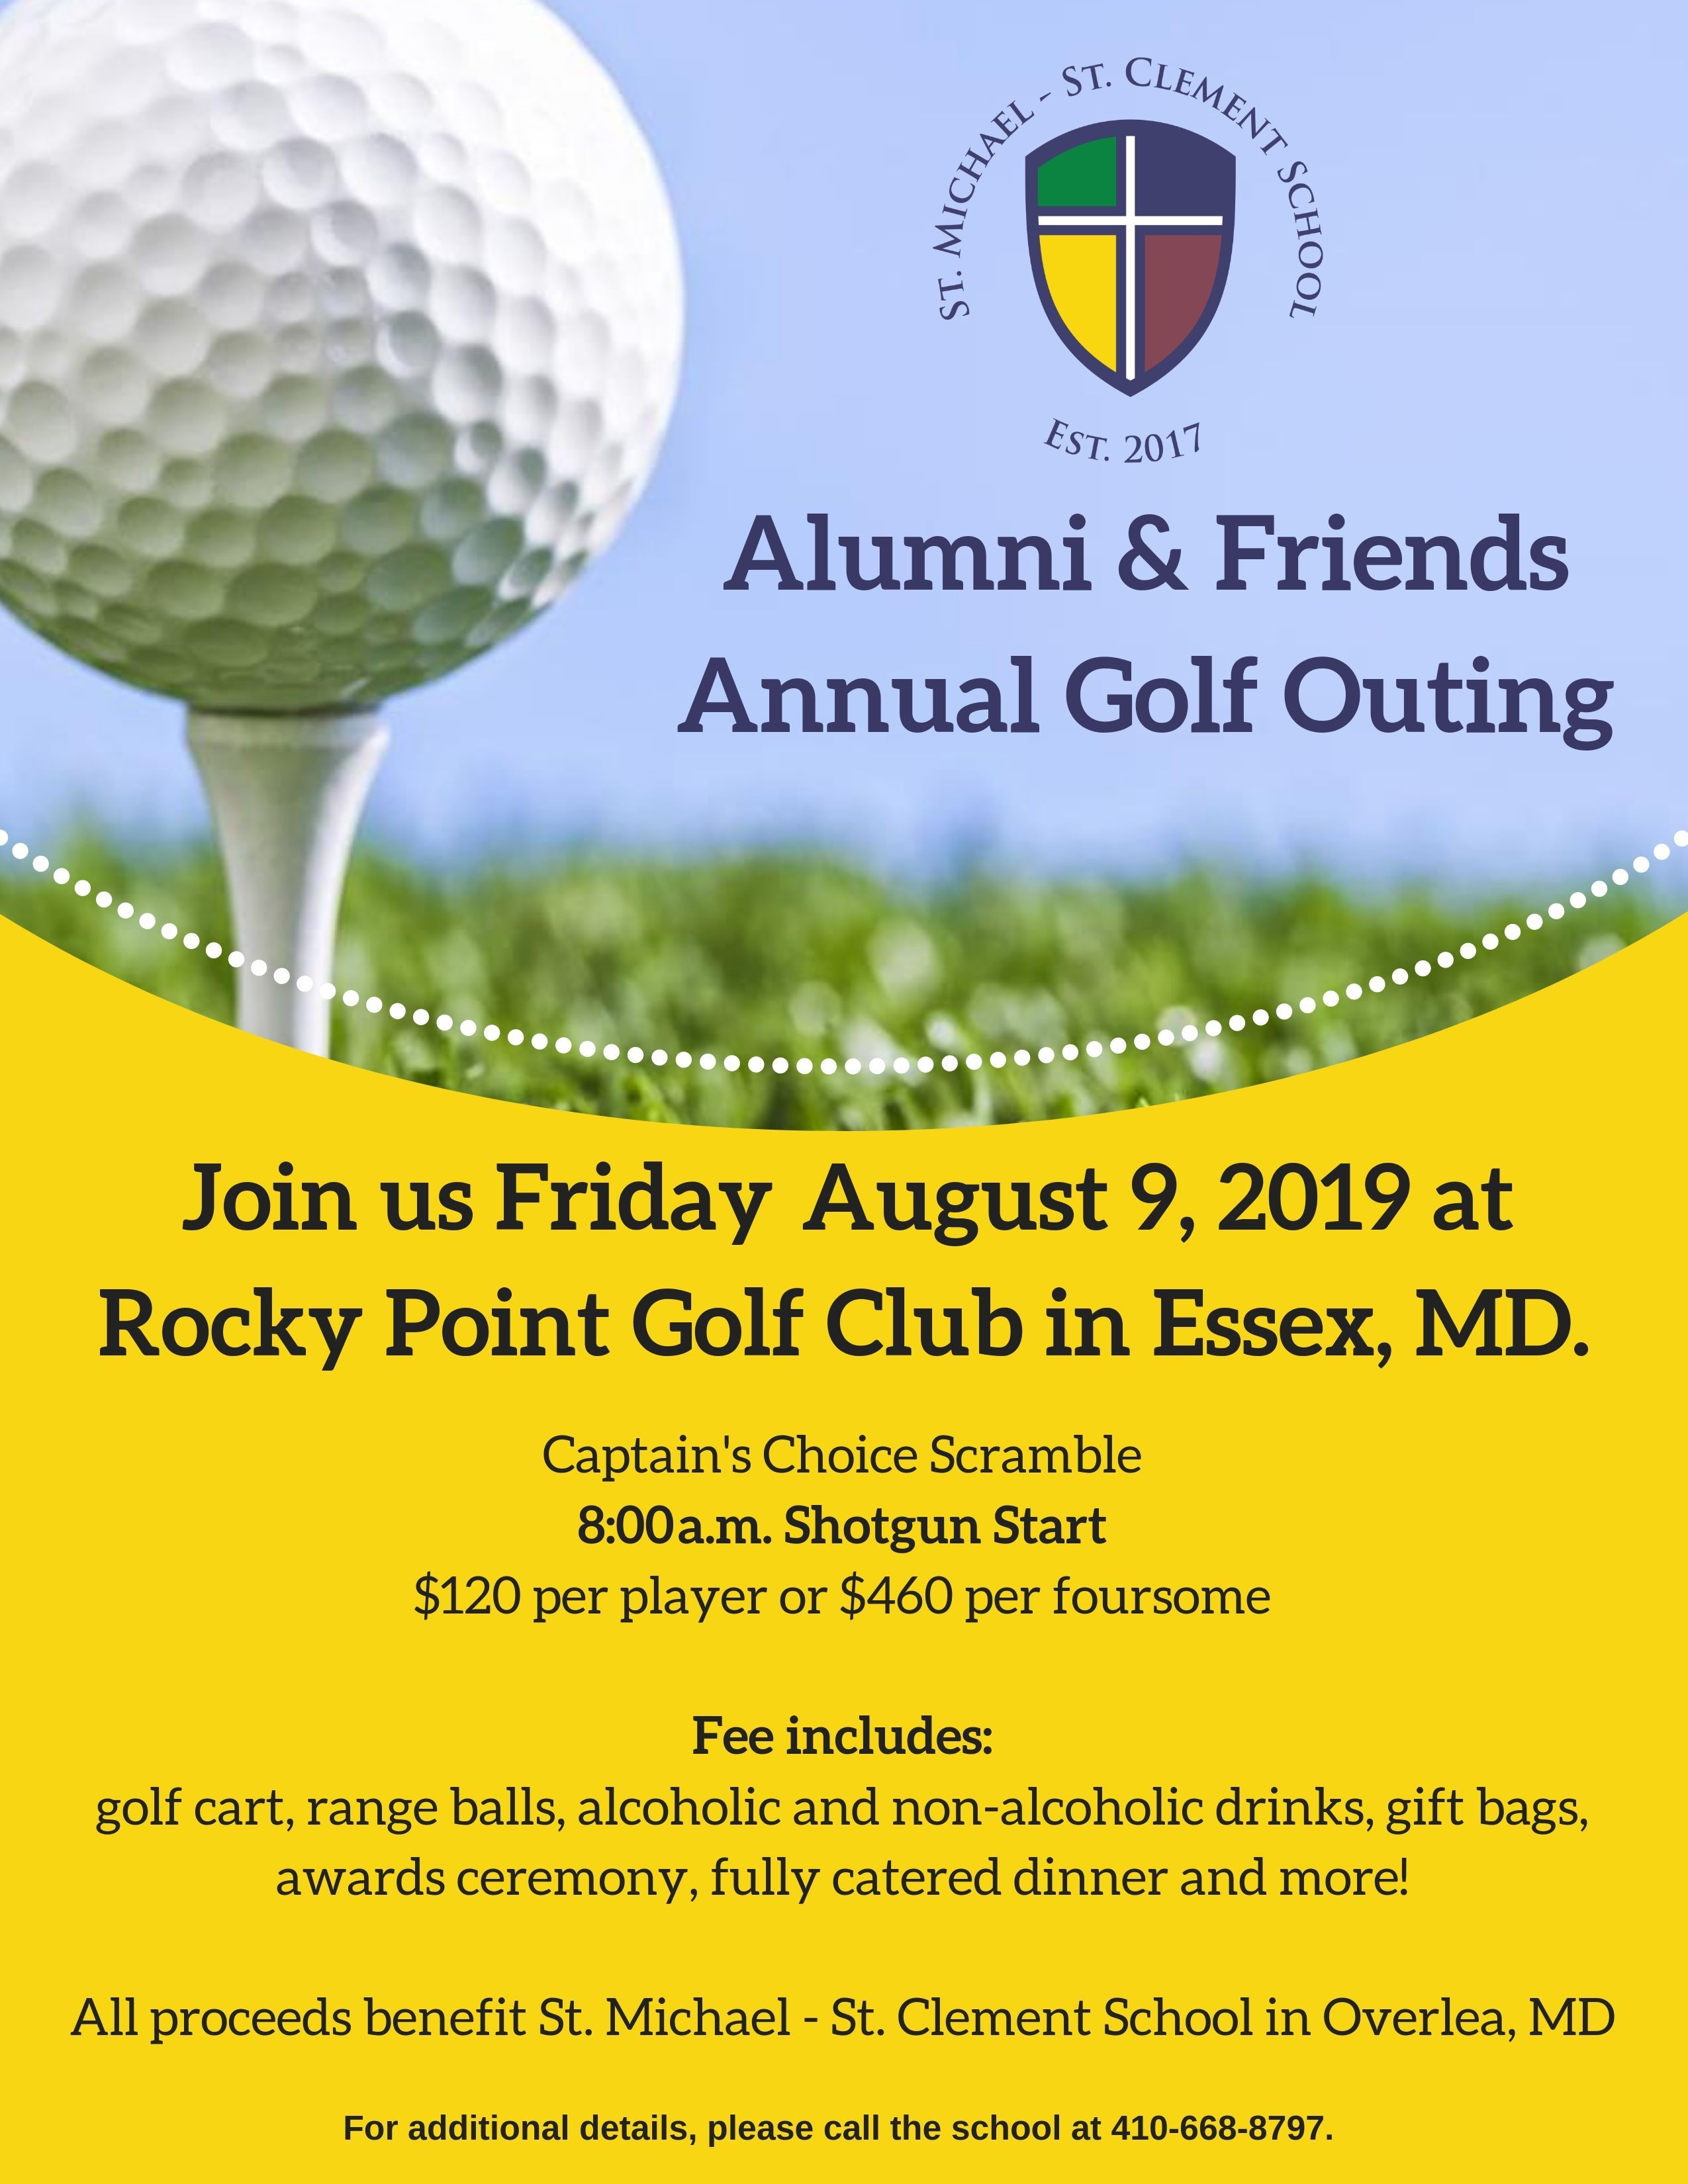 e105712bd5 Golf Outing | St. Michael - St. Clement School in Overlea, Md